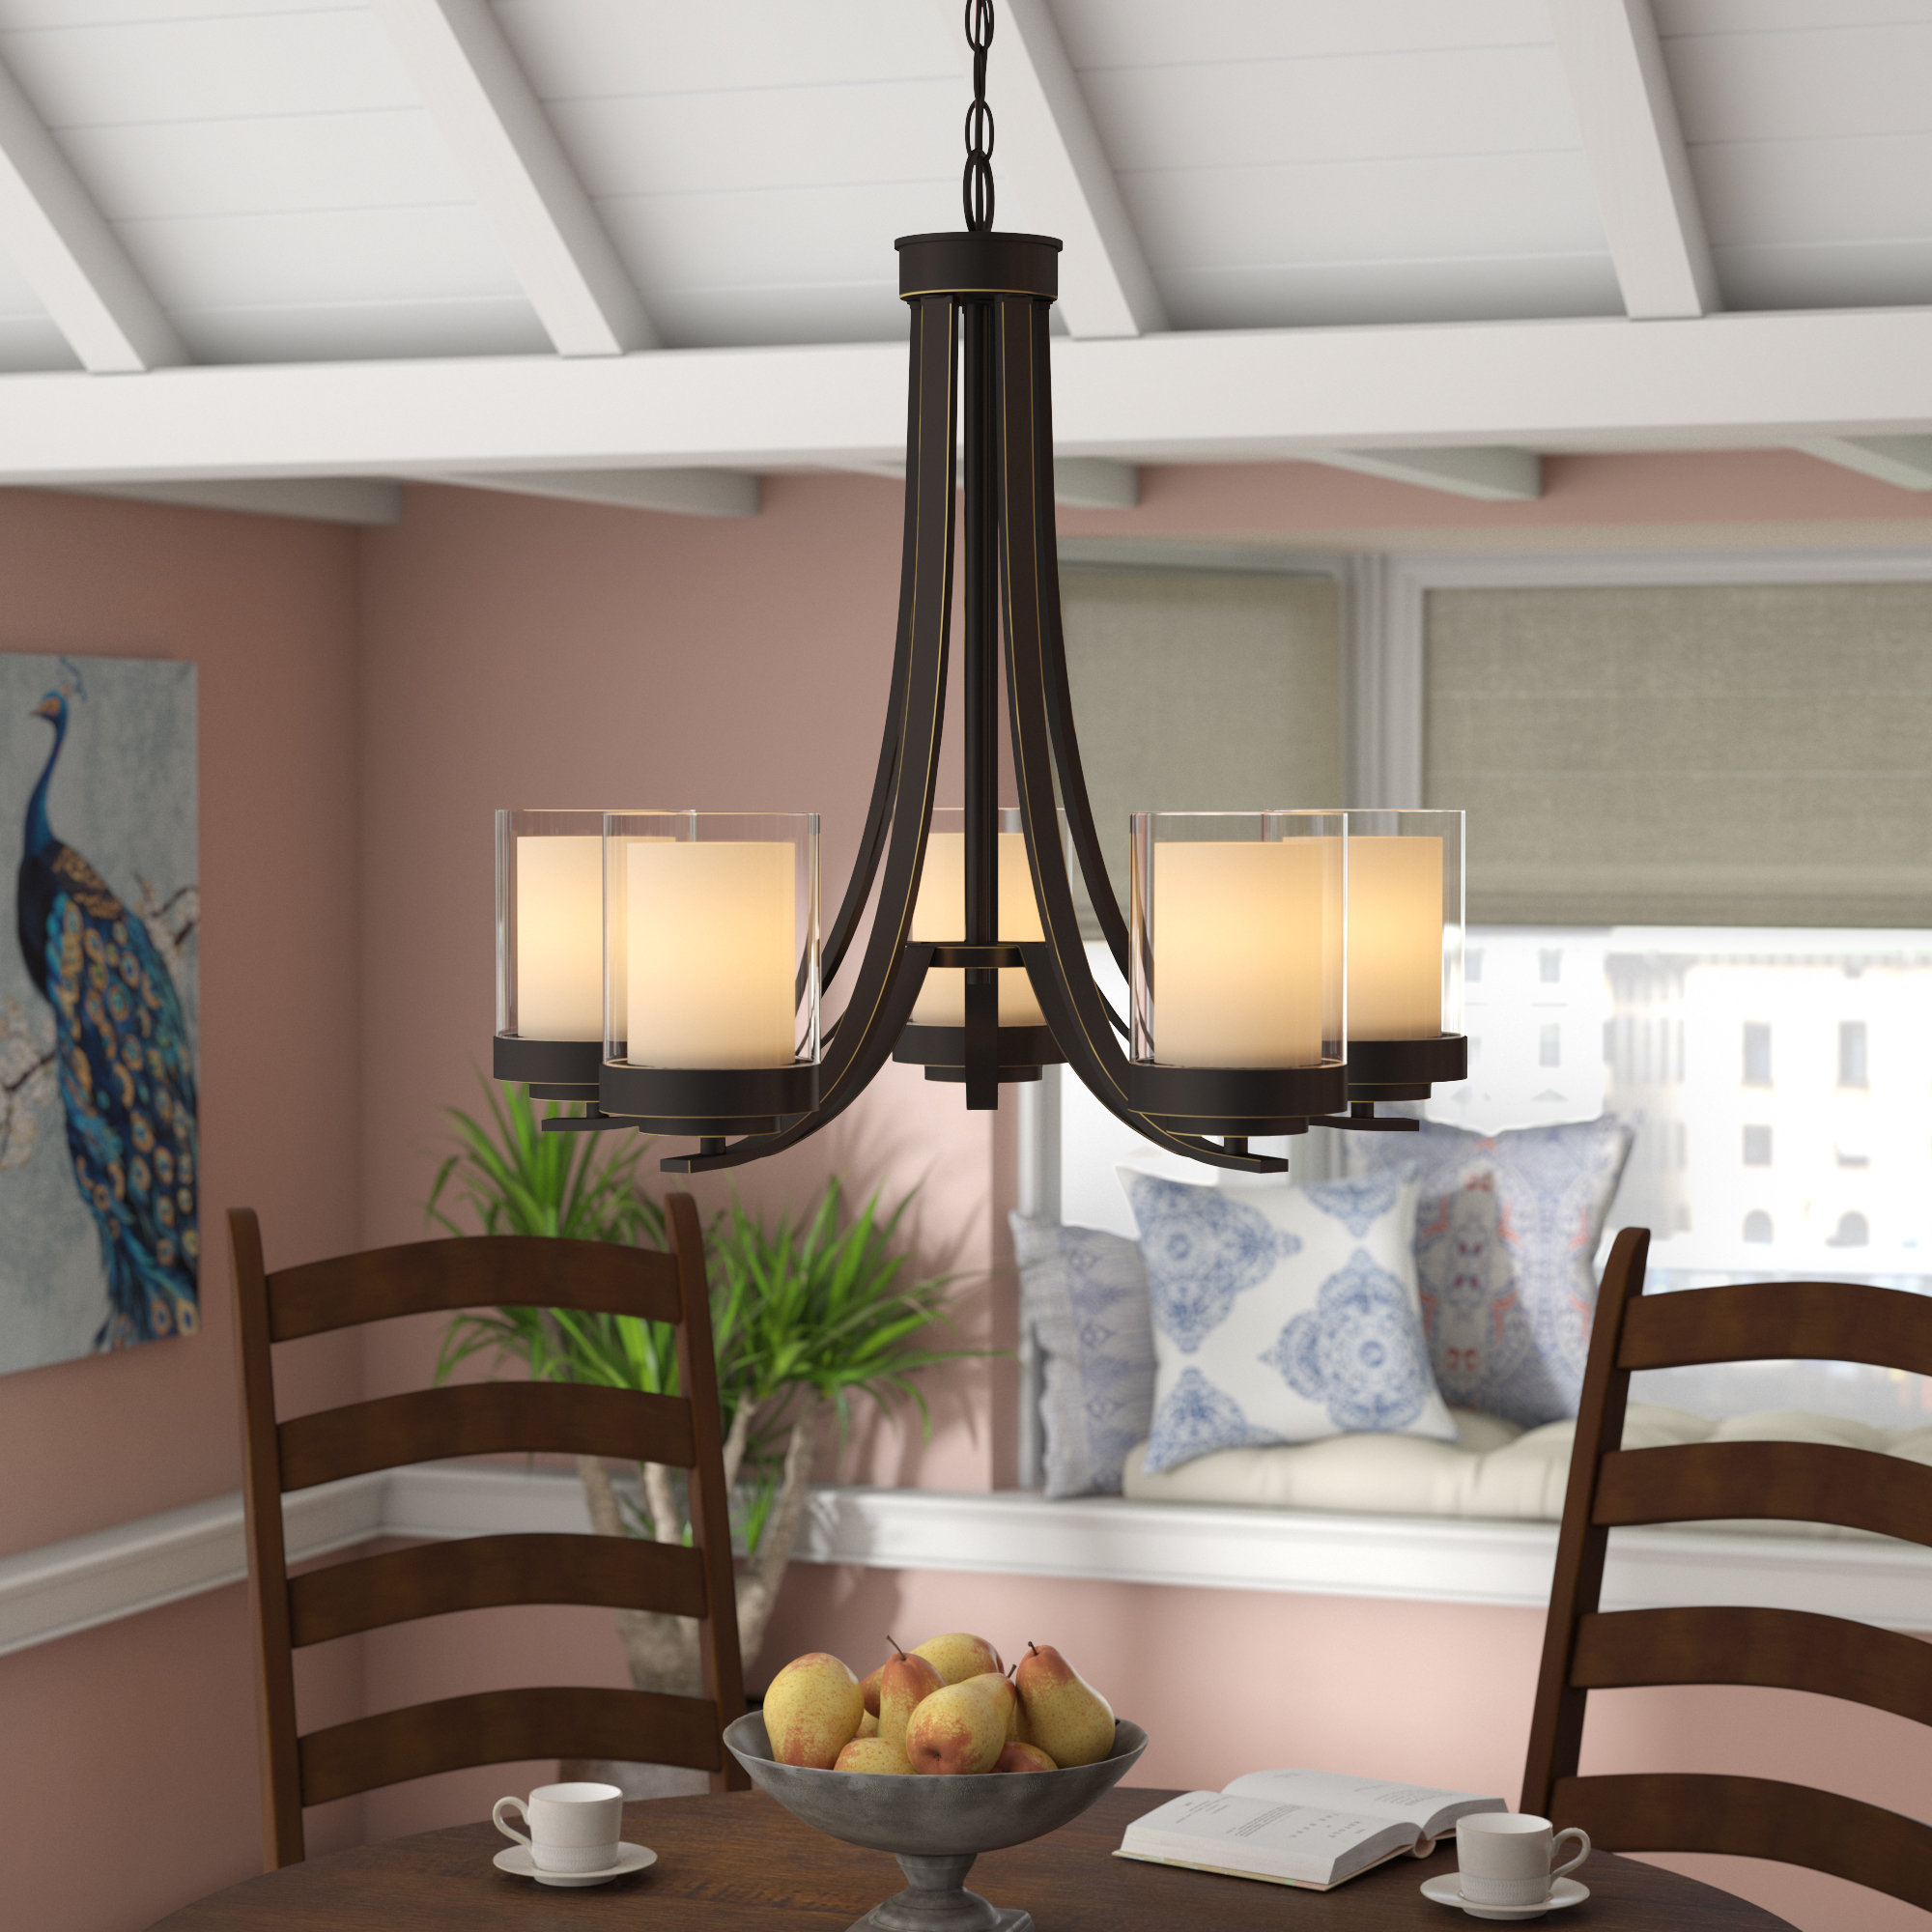 Suki 5 Light Shaded Chandelier | Wayfair Intended For Gaines 5 Light Shaded Chandeliers (View 12 of 30)